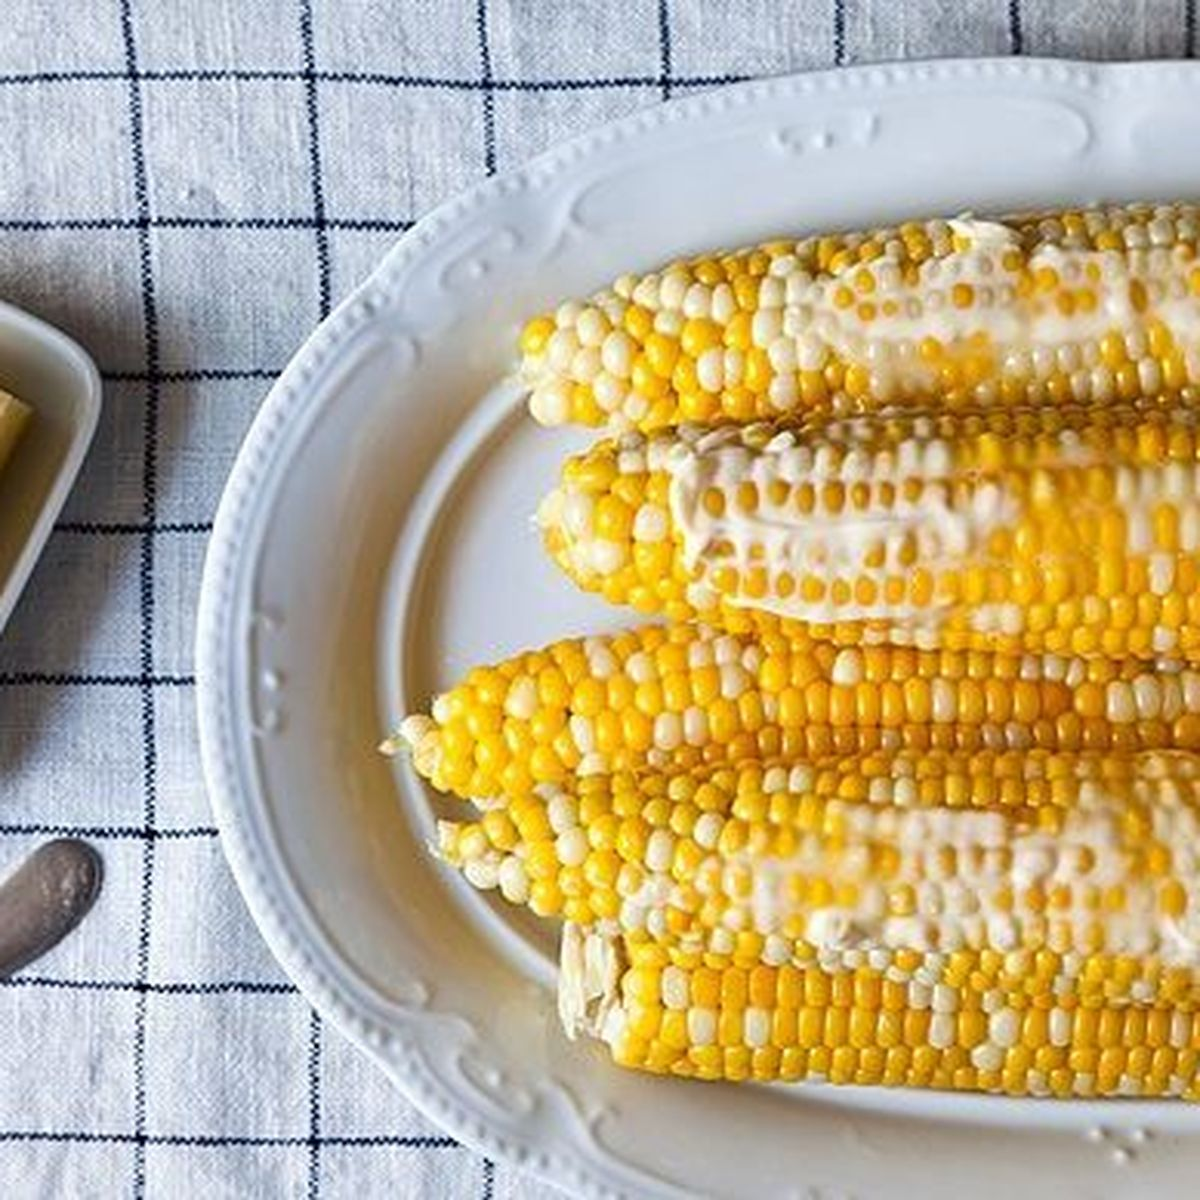 How to Microwave Corn on the Cob in the Husk